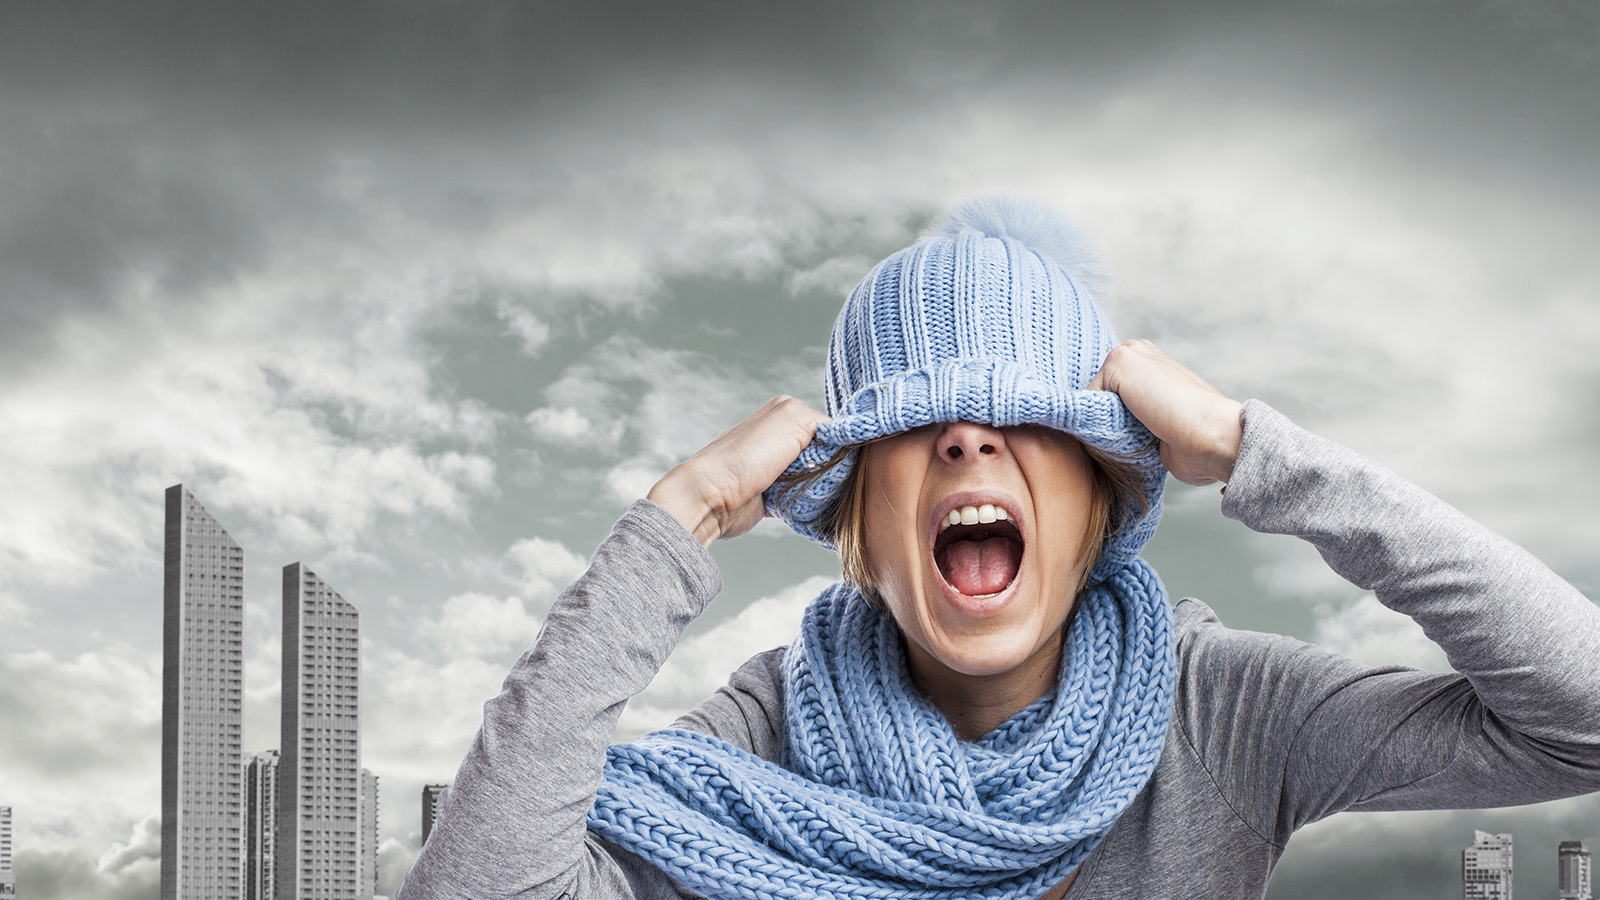 screaming young woman in front of polluted city